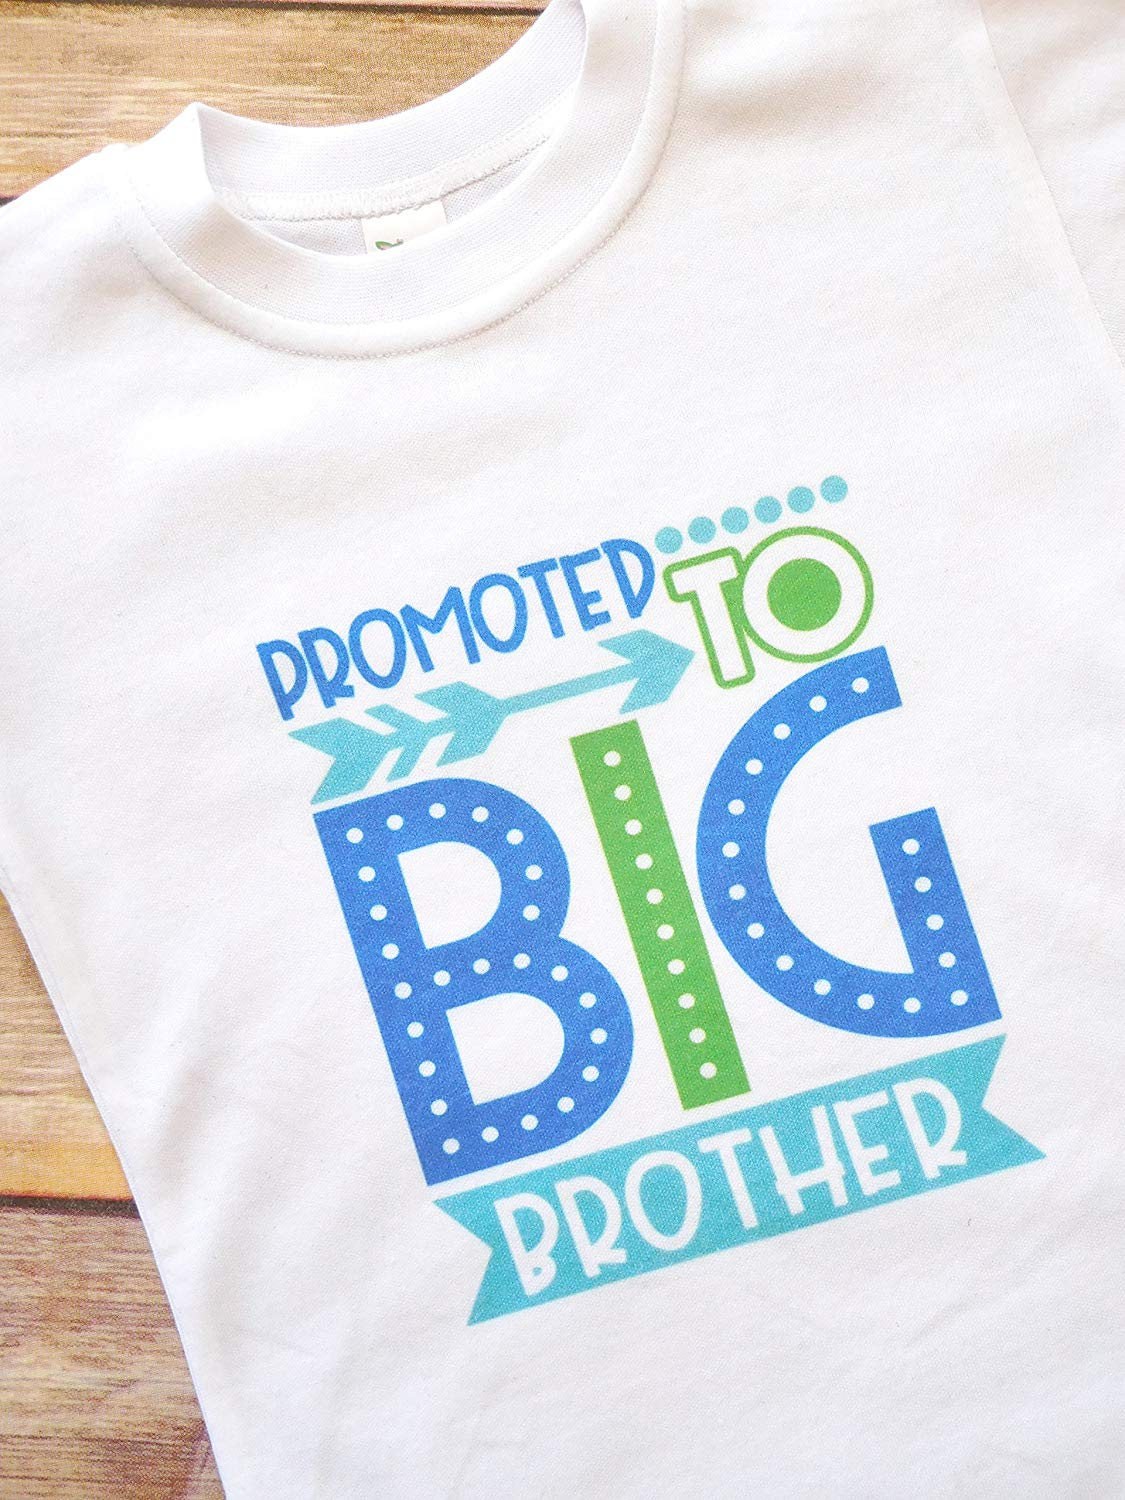 0a6477e5 Get Quotations · Promoted to Big Brother - Toddler T-shirt - Pregnancy  Announcement Shirt